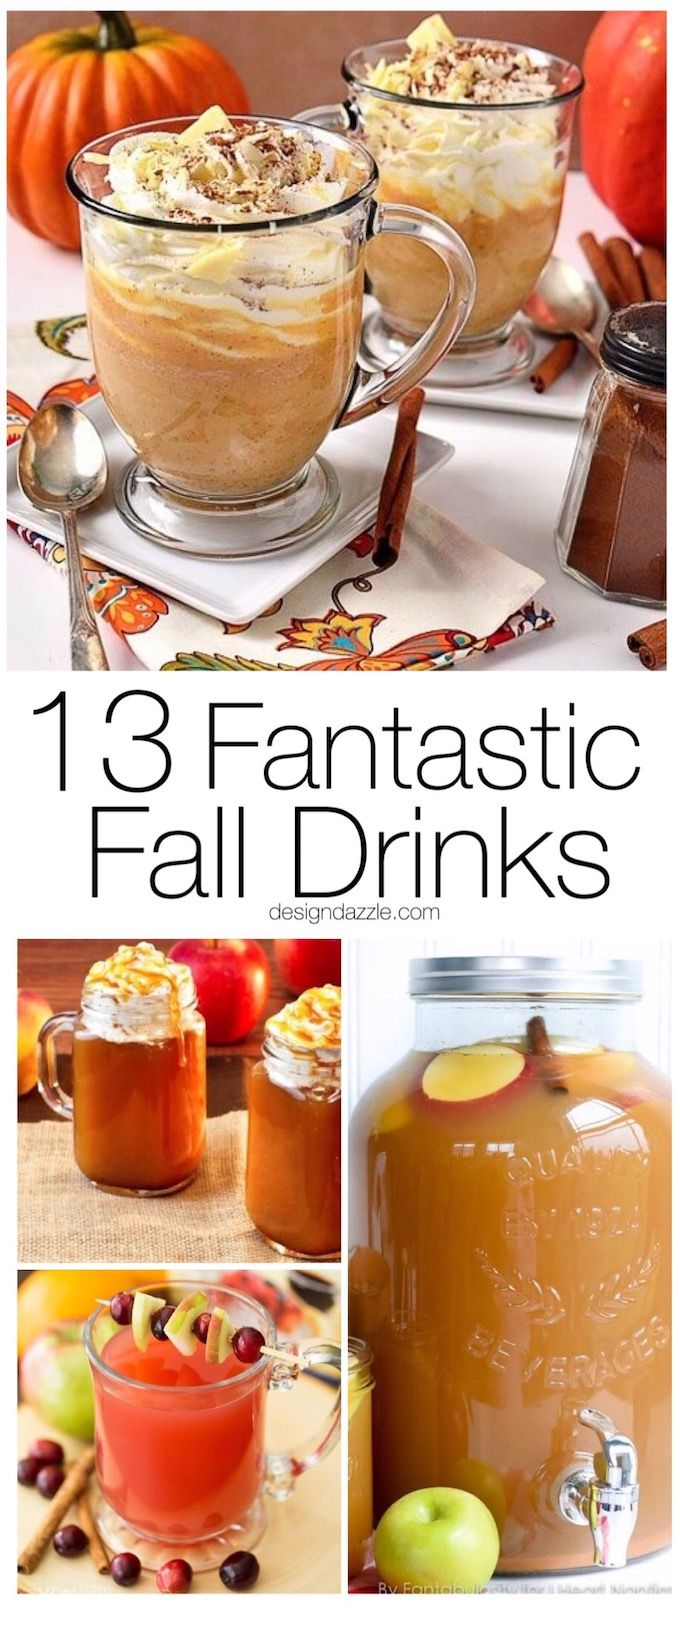 13 Fantastic Fall Drinks